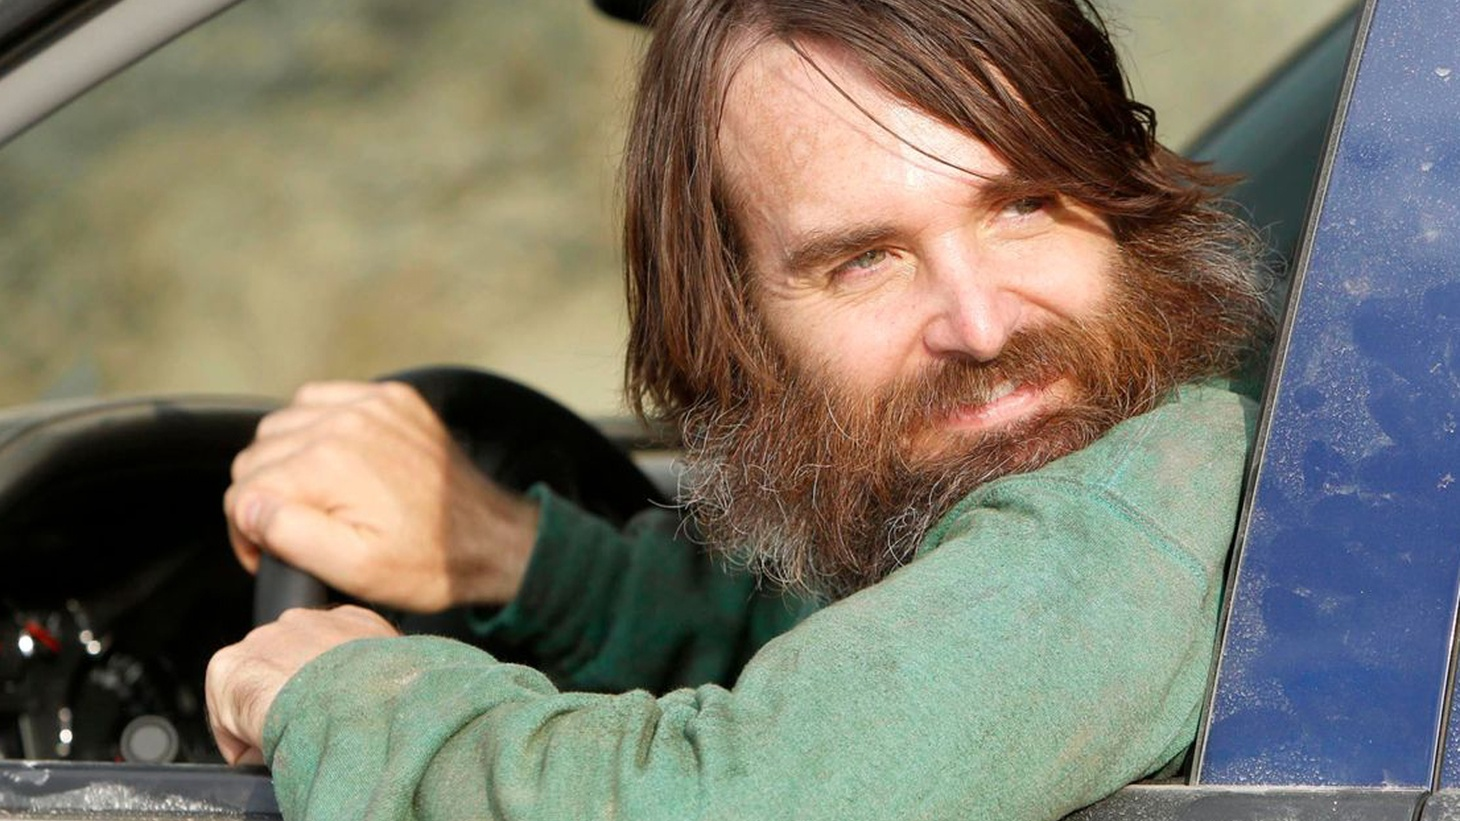 A TV show about the one man left alive after a virus wipes out the rest of humanity may not sound very funny, but Will Forte saw great comedic potential in the idea. Now he's Emmy nominated for writing and starring in Fox's The Last Man on Earth.